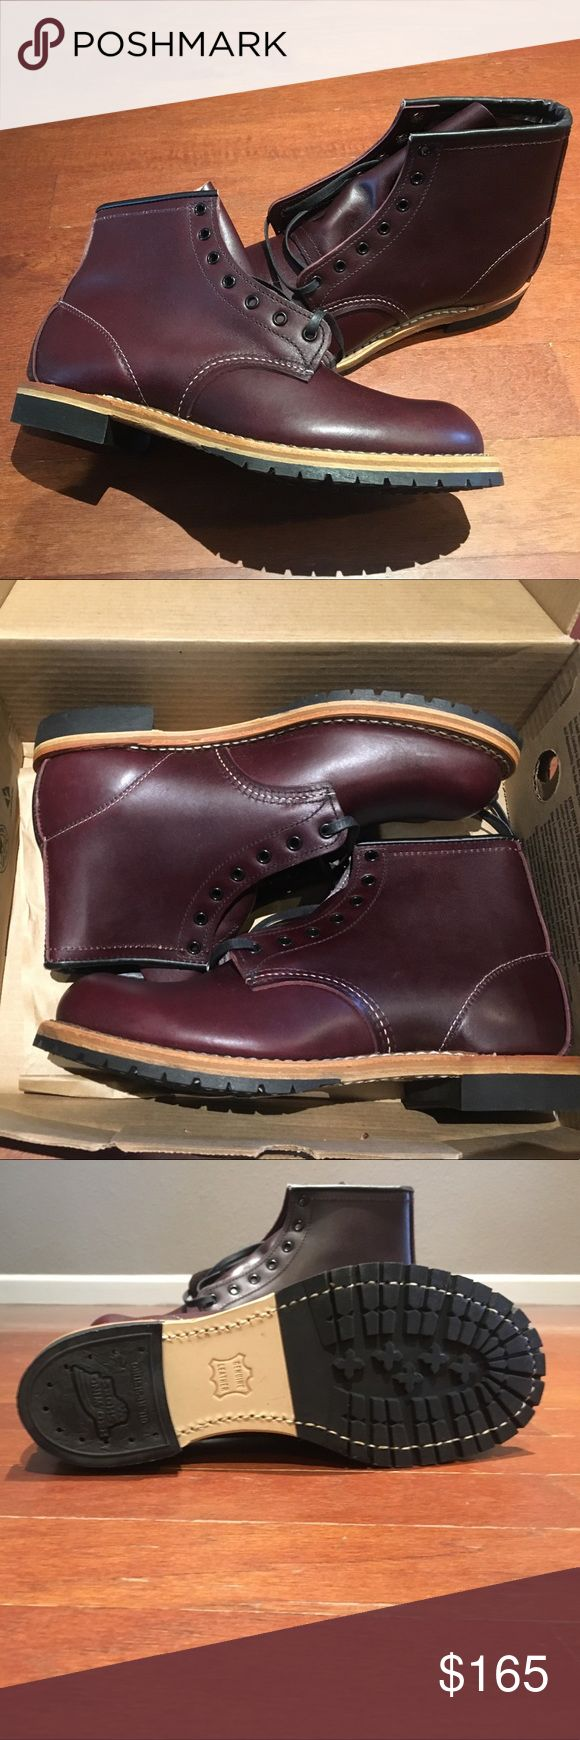 Red Wing Boots - Beckman Boots. Real Leather Red Wing Boots - Beckman Boots. Black cherry  color. Real Leather. Size 8. True to size. Lace closure. Round plain toe, topstitching, firm foot bed for stability.  Has a grip lug sole. Black laces. IMPORTED! Super high-quality. Brand new never been worn. These will only be on this website for two weeks. Red Wing Shoes Shoes Boots